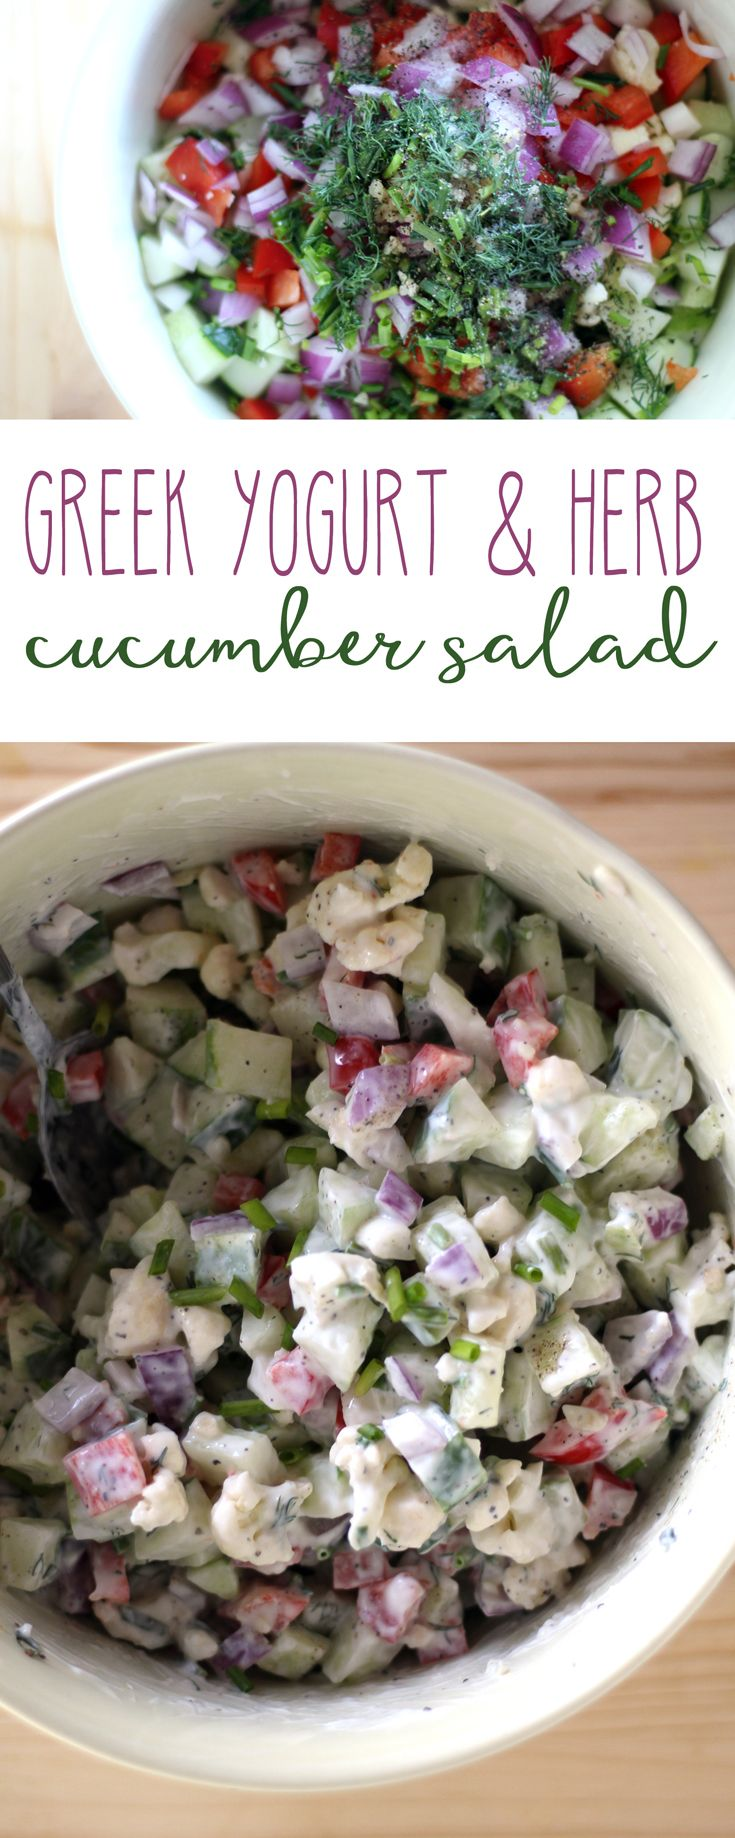 Creamy-crunchy bites of fresh cucumber and red onion with dill and chives. I'm voting this cucumber salad as THE healthy recipe of my summer. via @Buy This Cook That